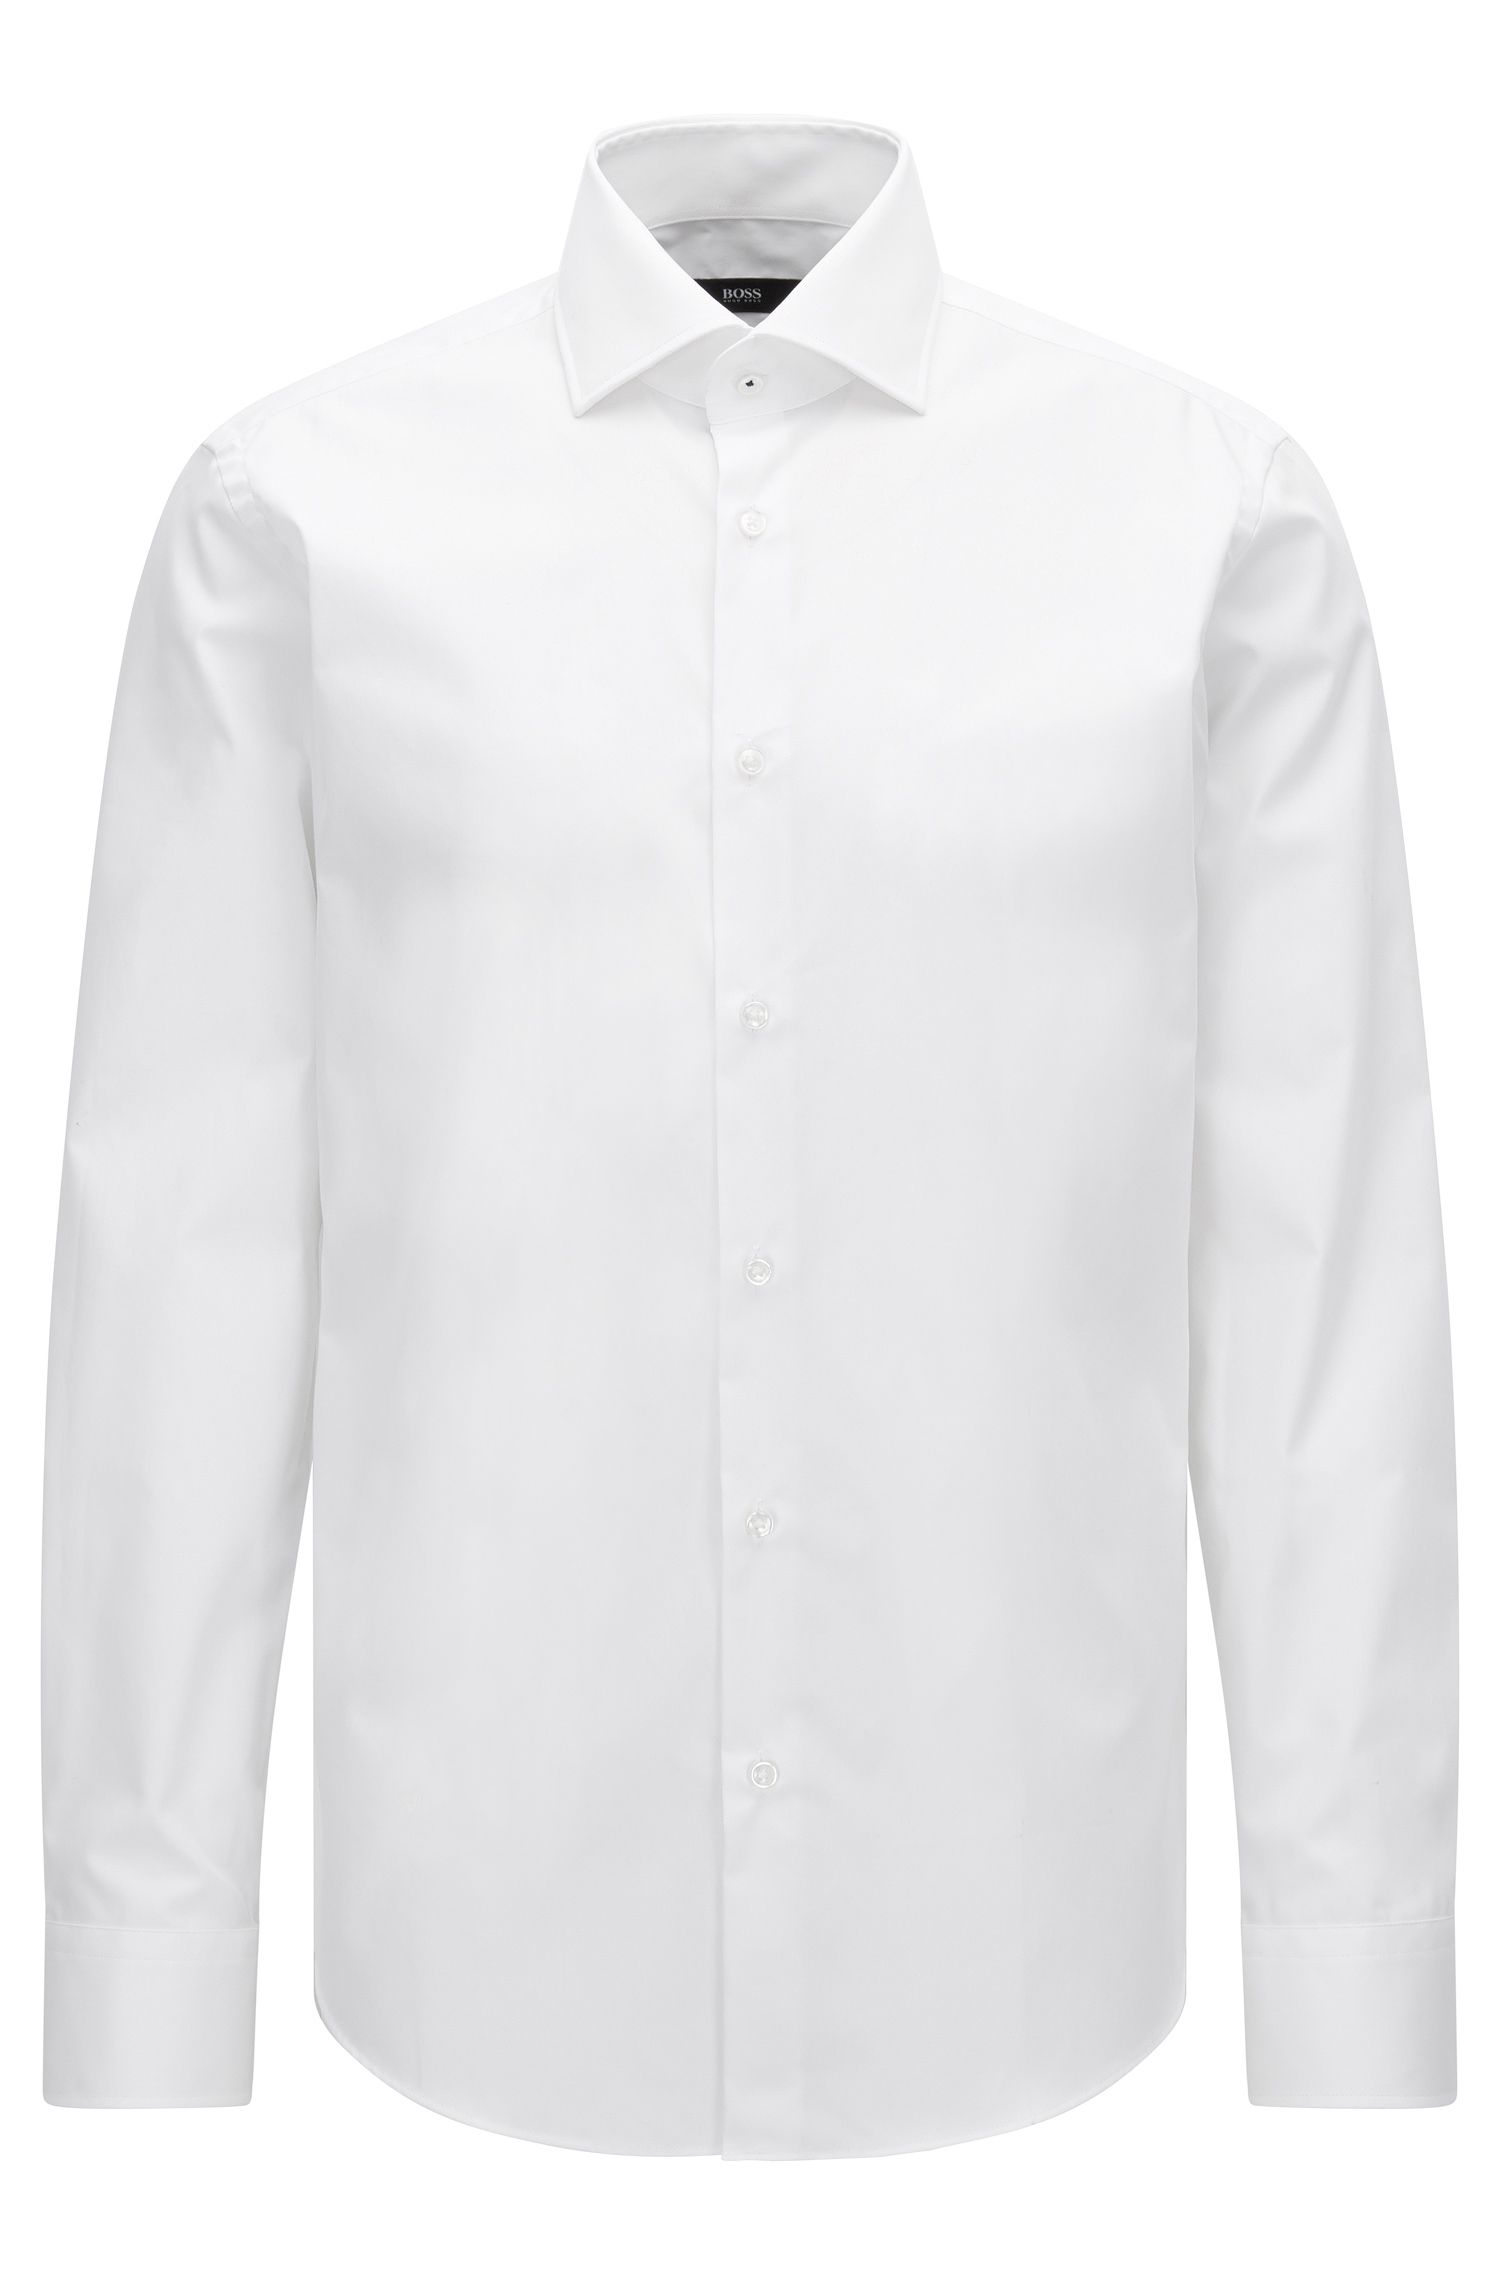 Regular-fit shirt in plain cotton poplin